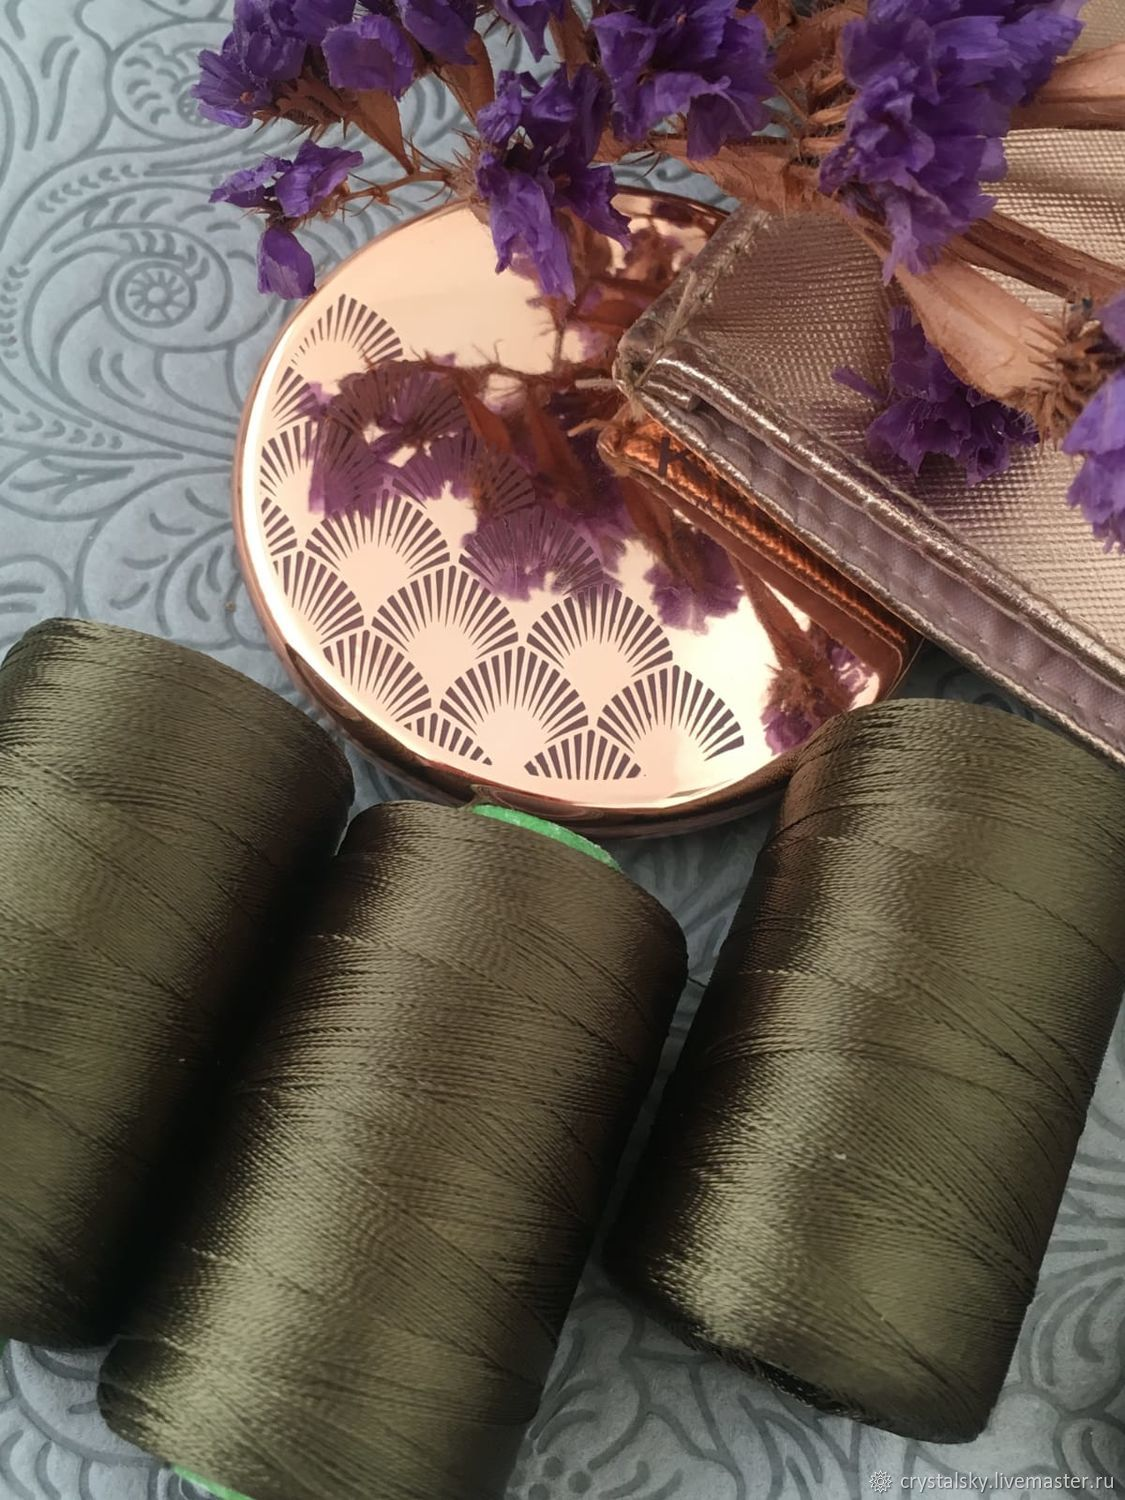 Silk threads for embroidery and brushes India, 'Dark olive', Bordado manualidades, Jerusalem, Фото №1